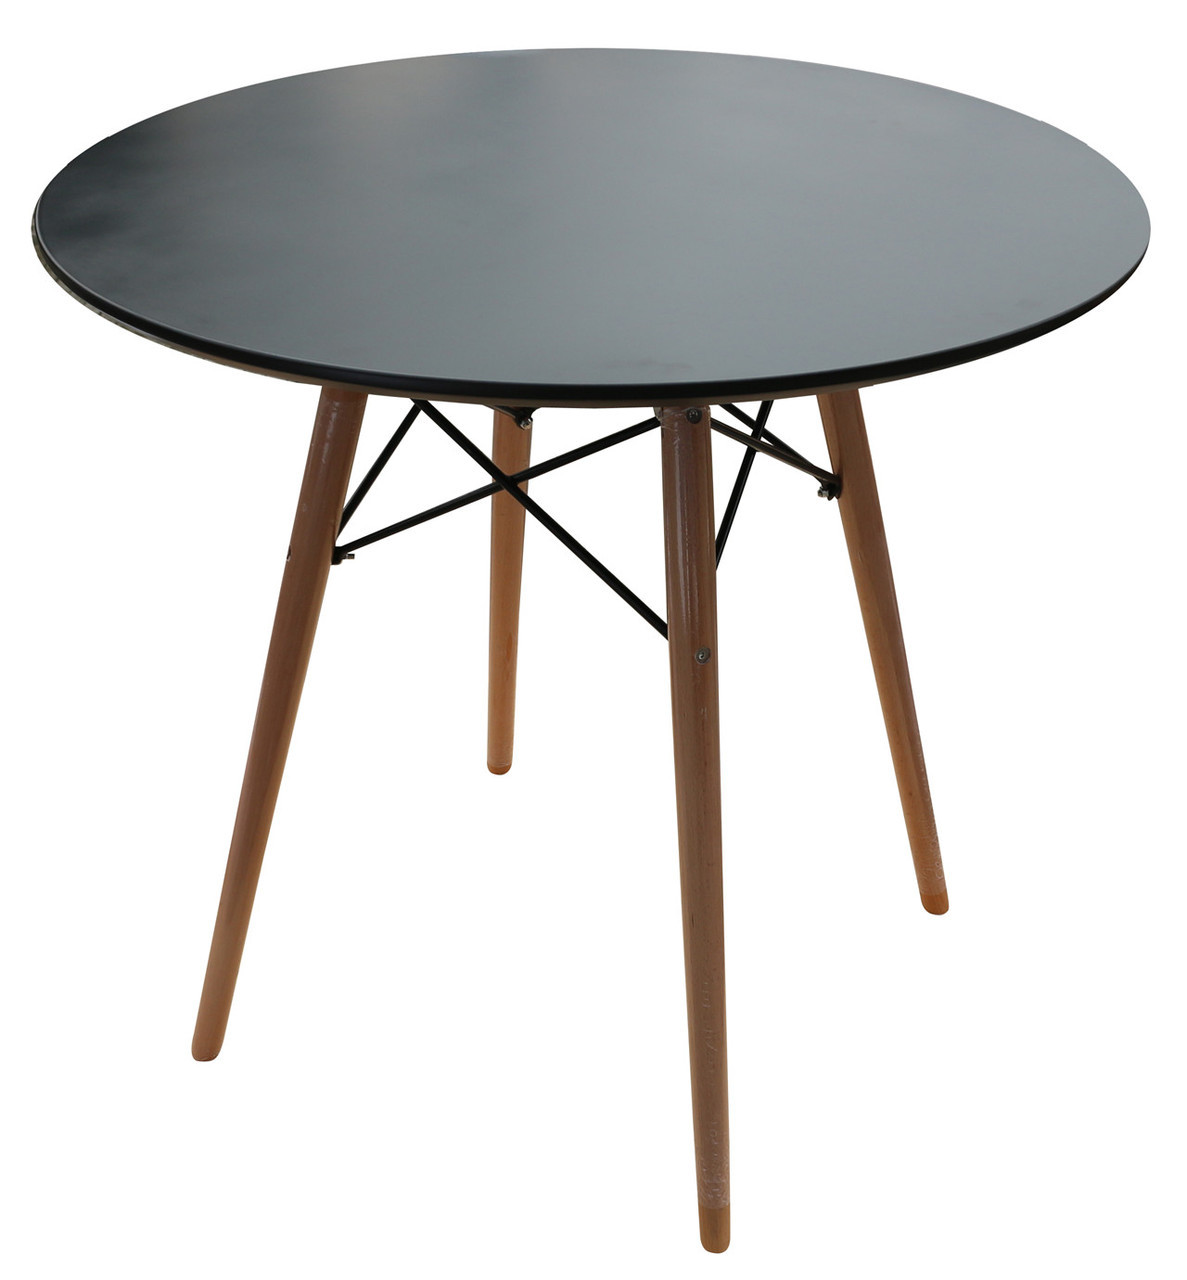 Replica Charles & Ray Eames DSW Dining Table-black-80cm